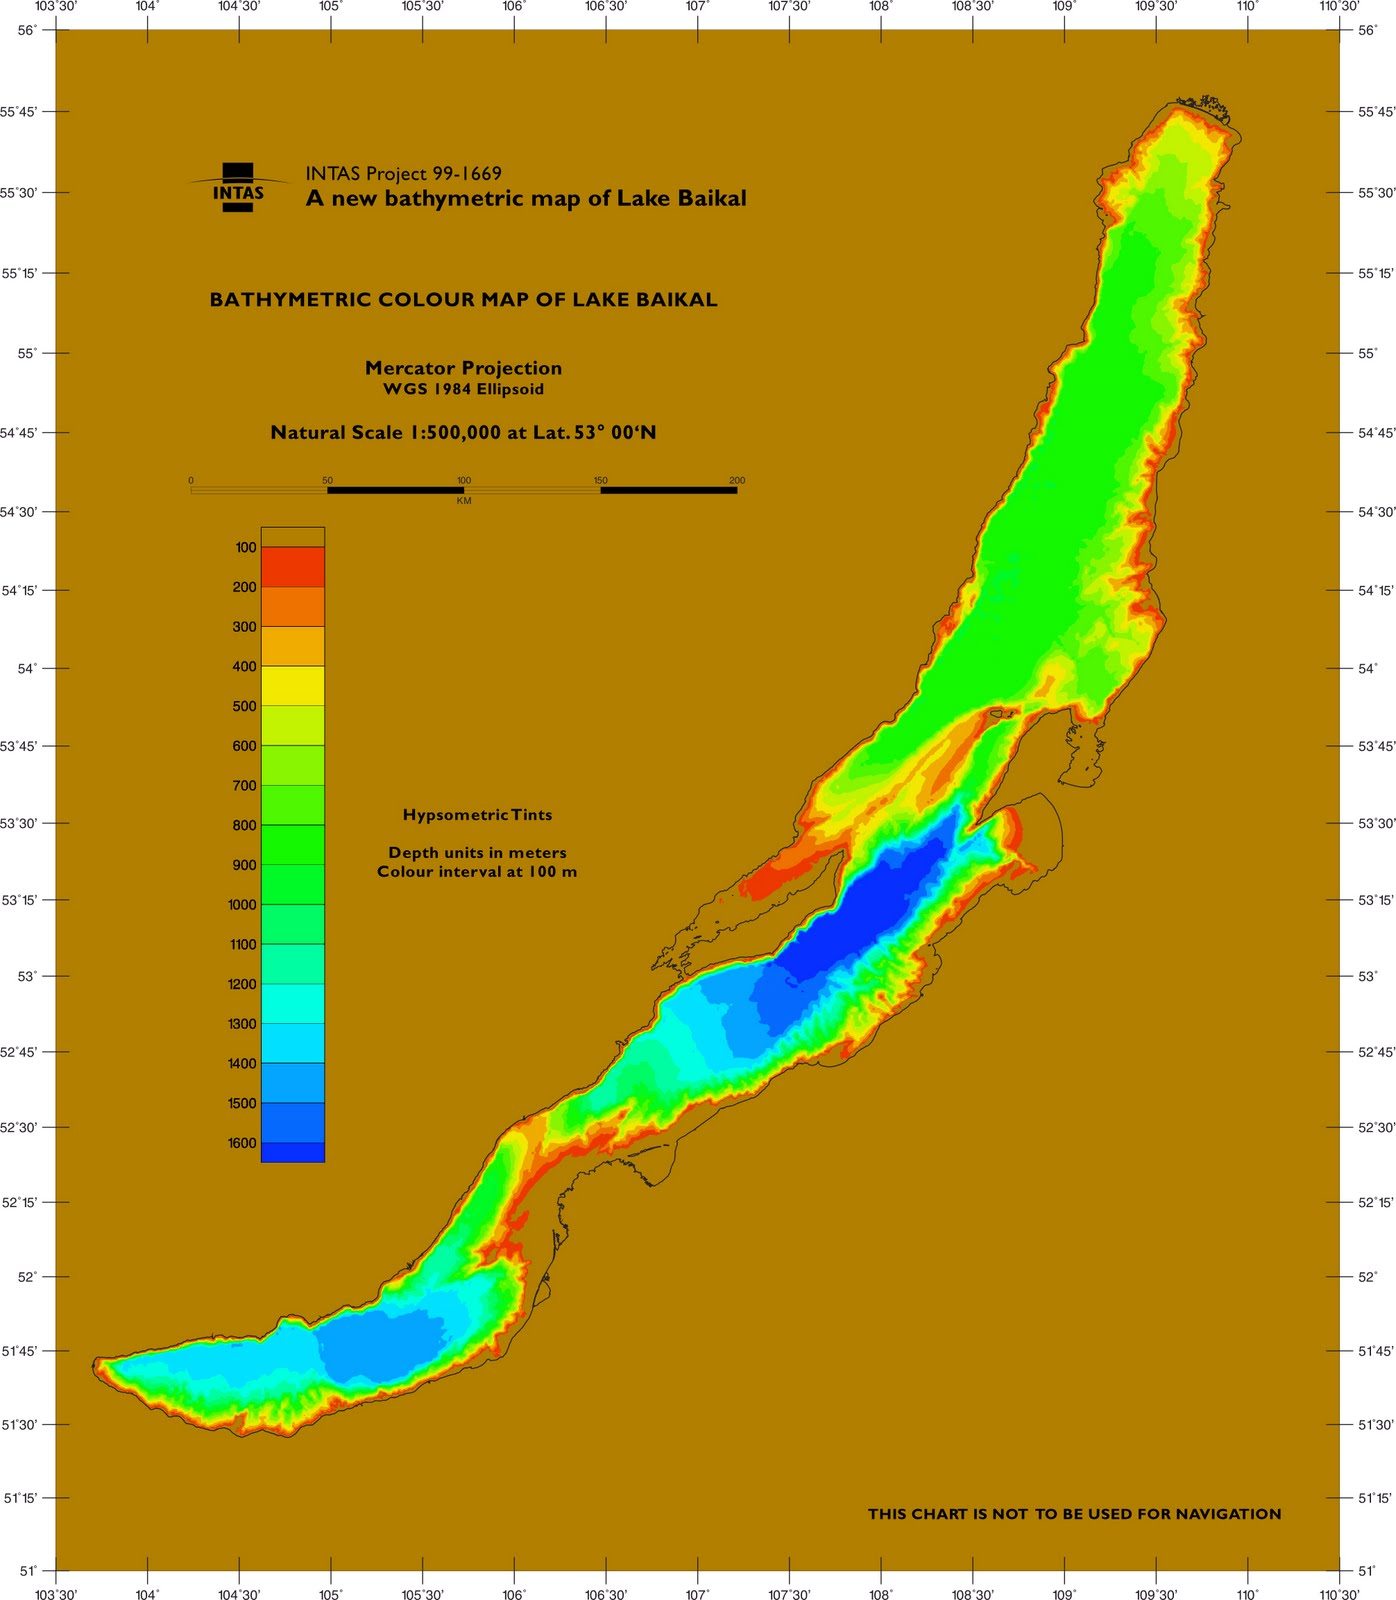 Bathymetry Color Map of Lake Baikal